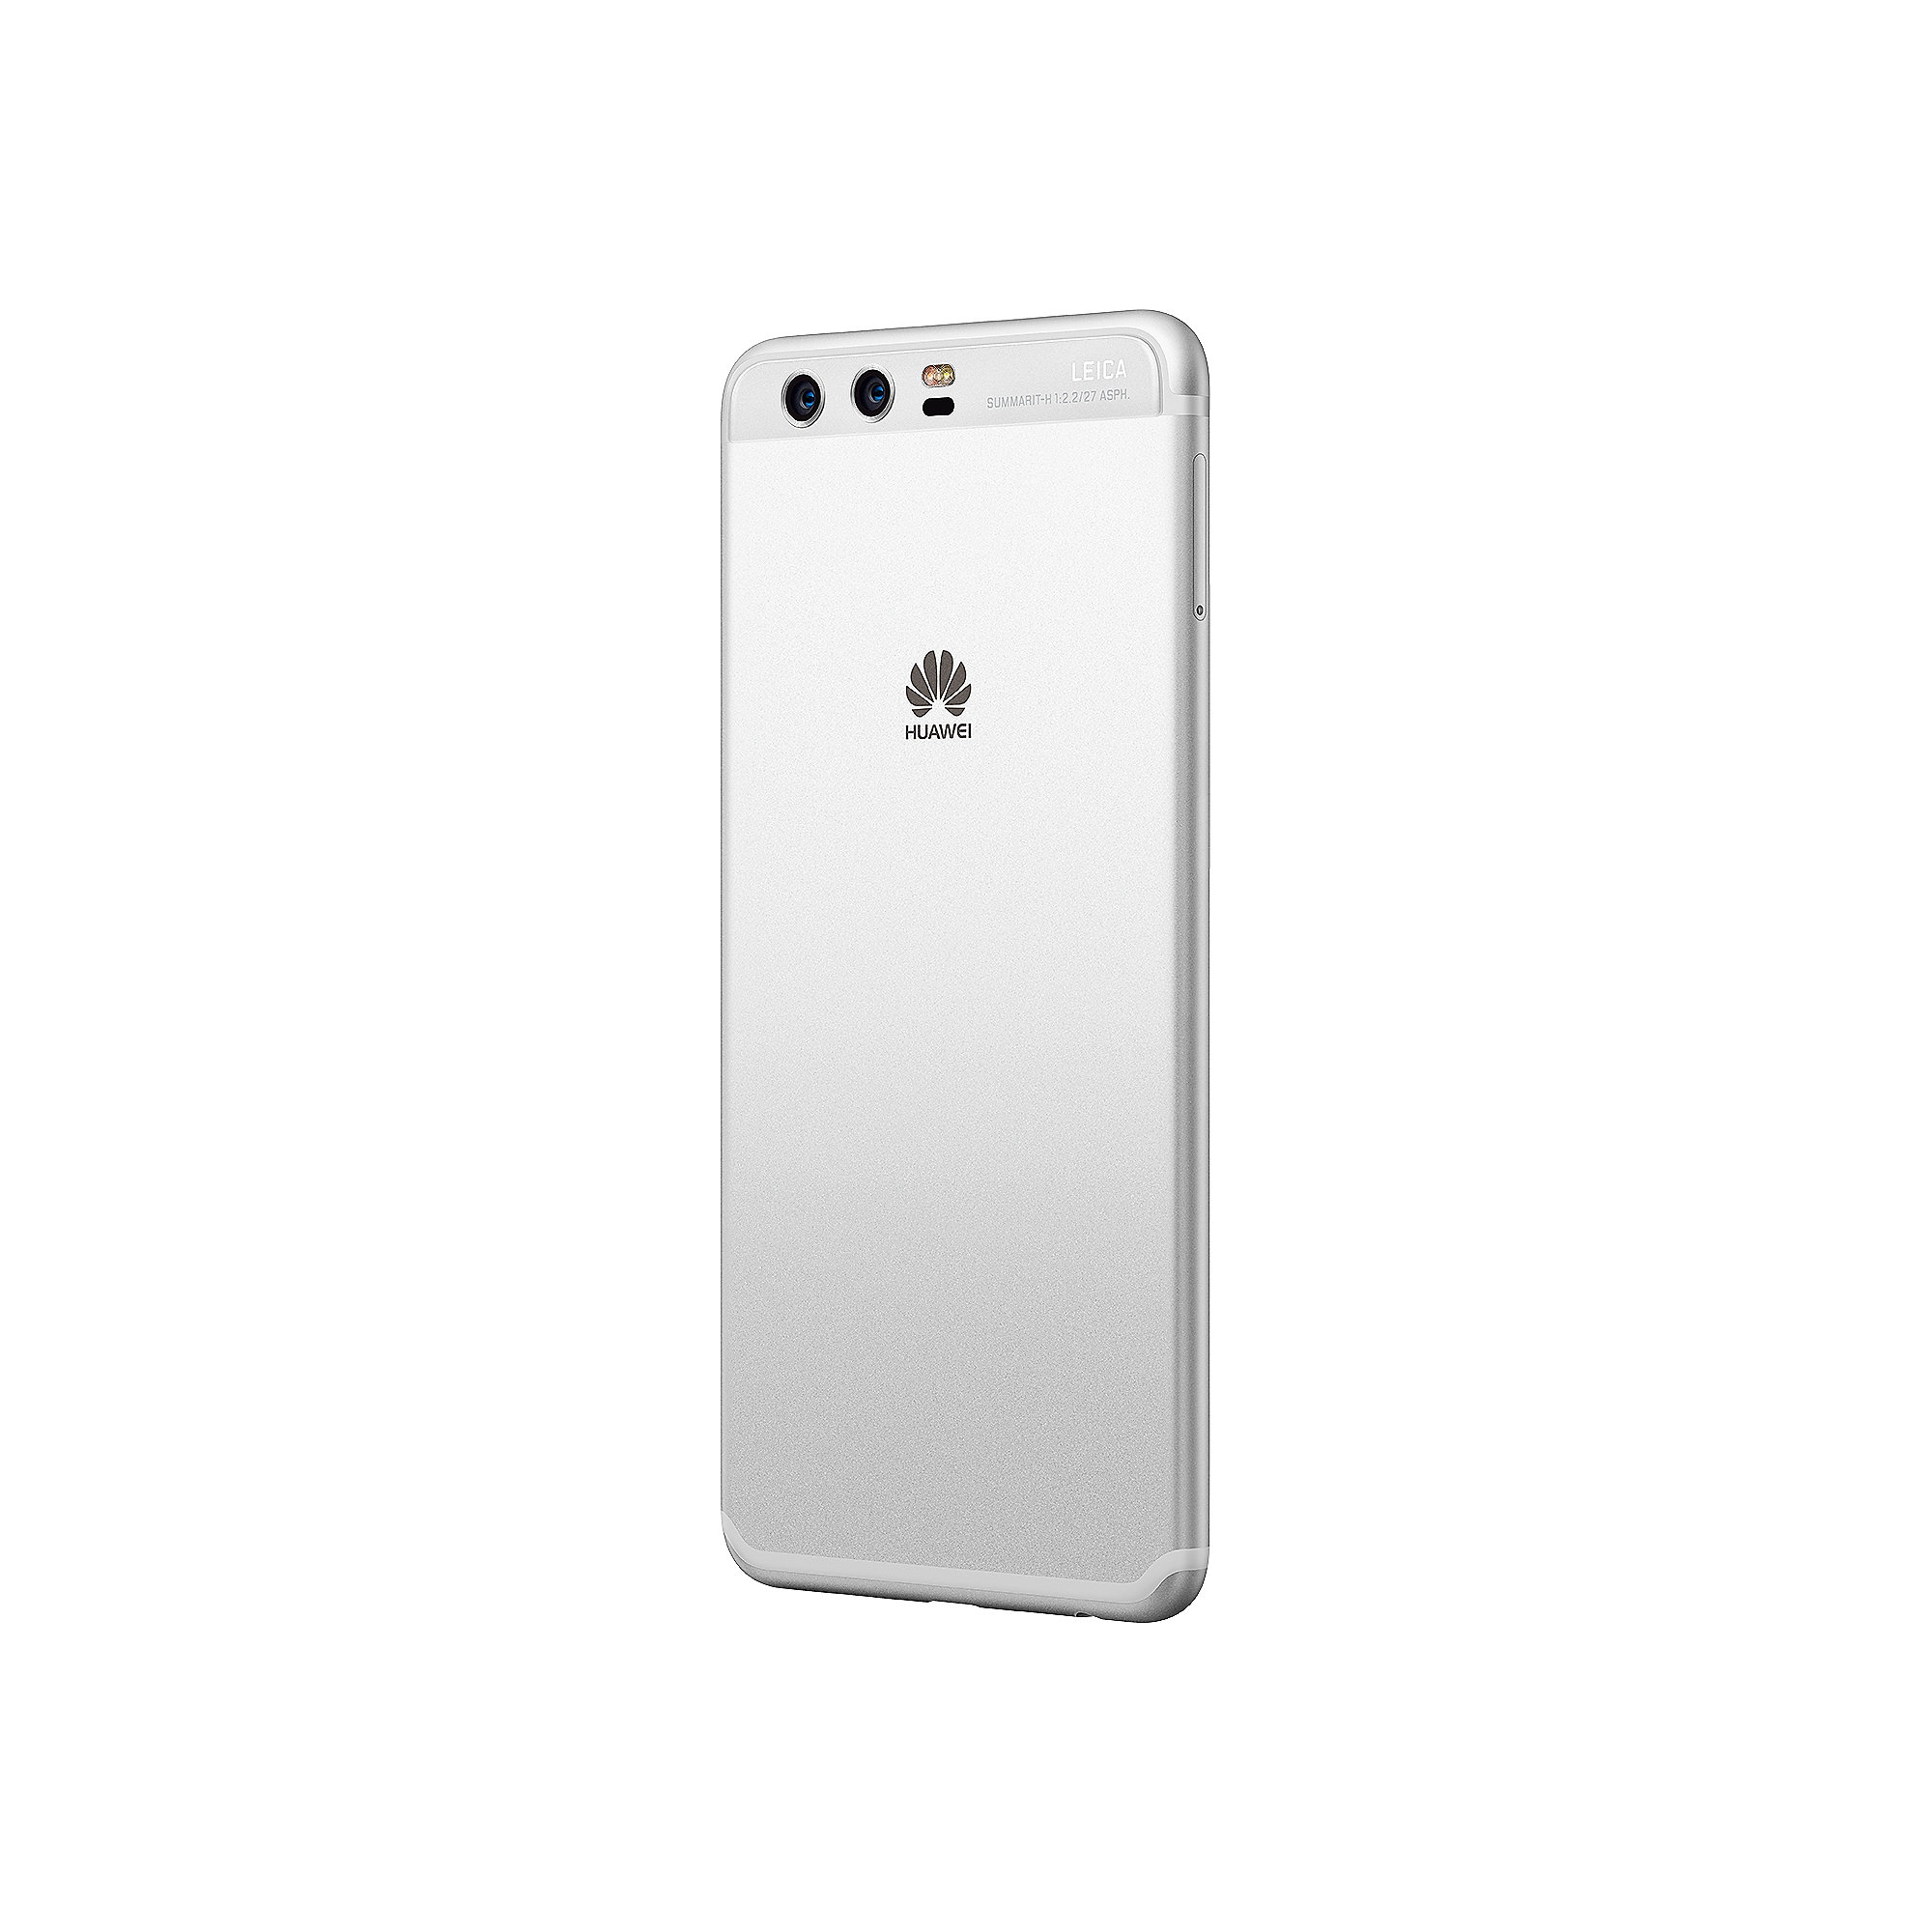 HUAWEI P10 mystic silver Android 7.0 Smartphone mit Leica Dual-Kamera